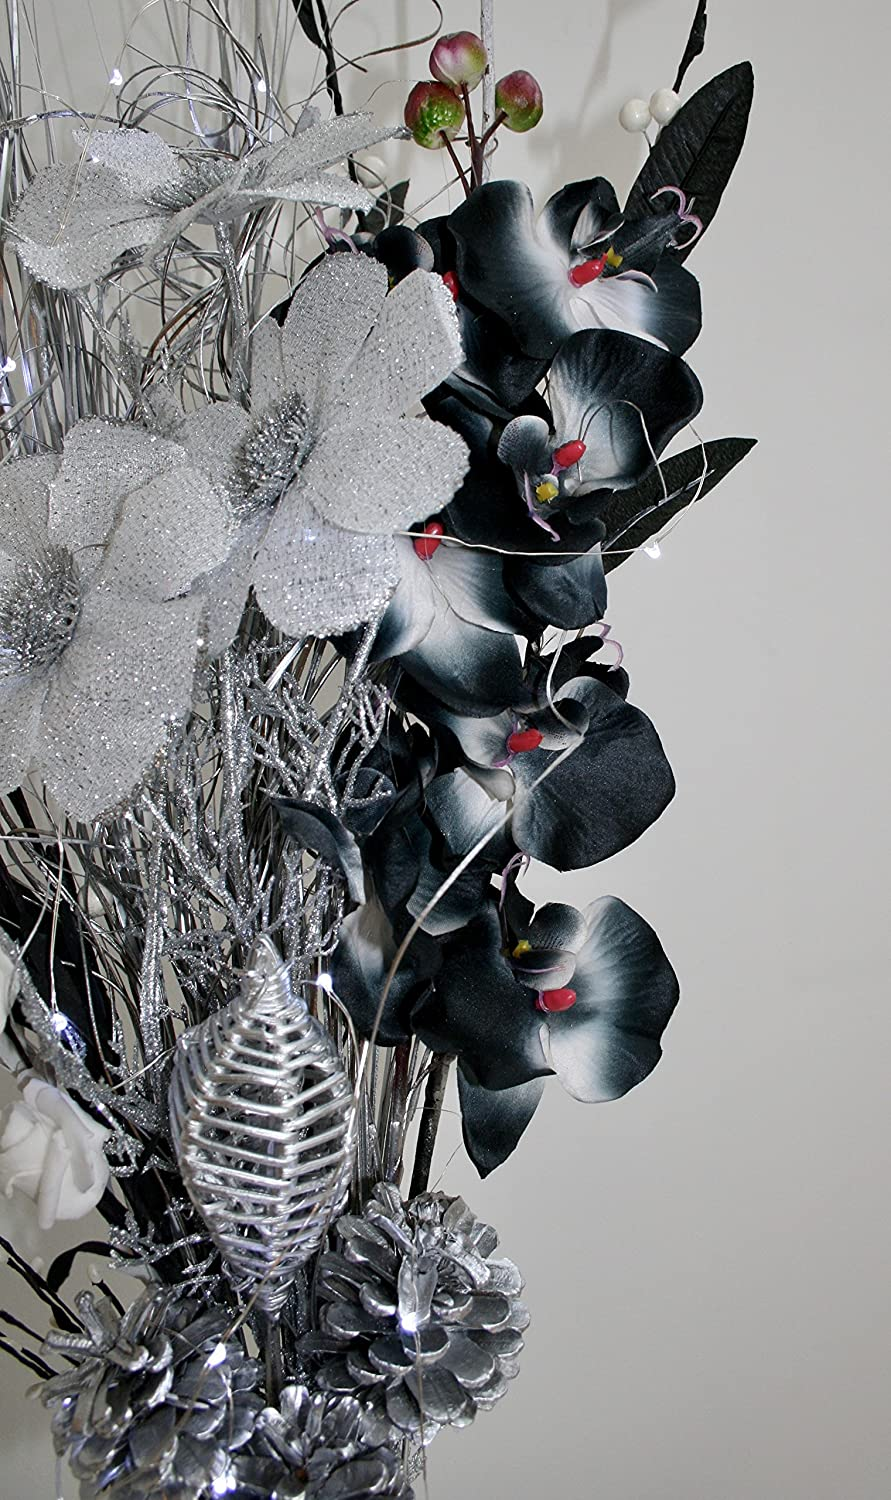 FREE Black Wooden Vase Lights Up Silver /& White Bouquet 20 Lights 85cm Tall. Link Products Hand-Made Black